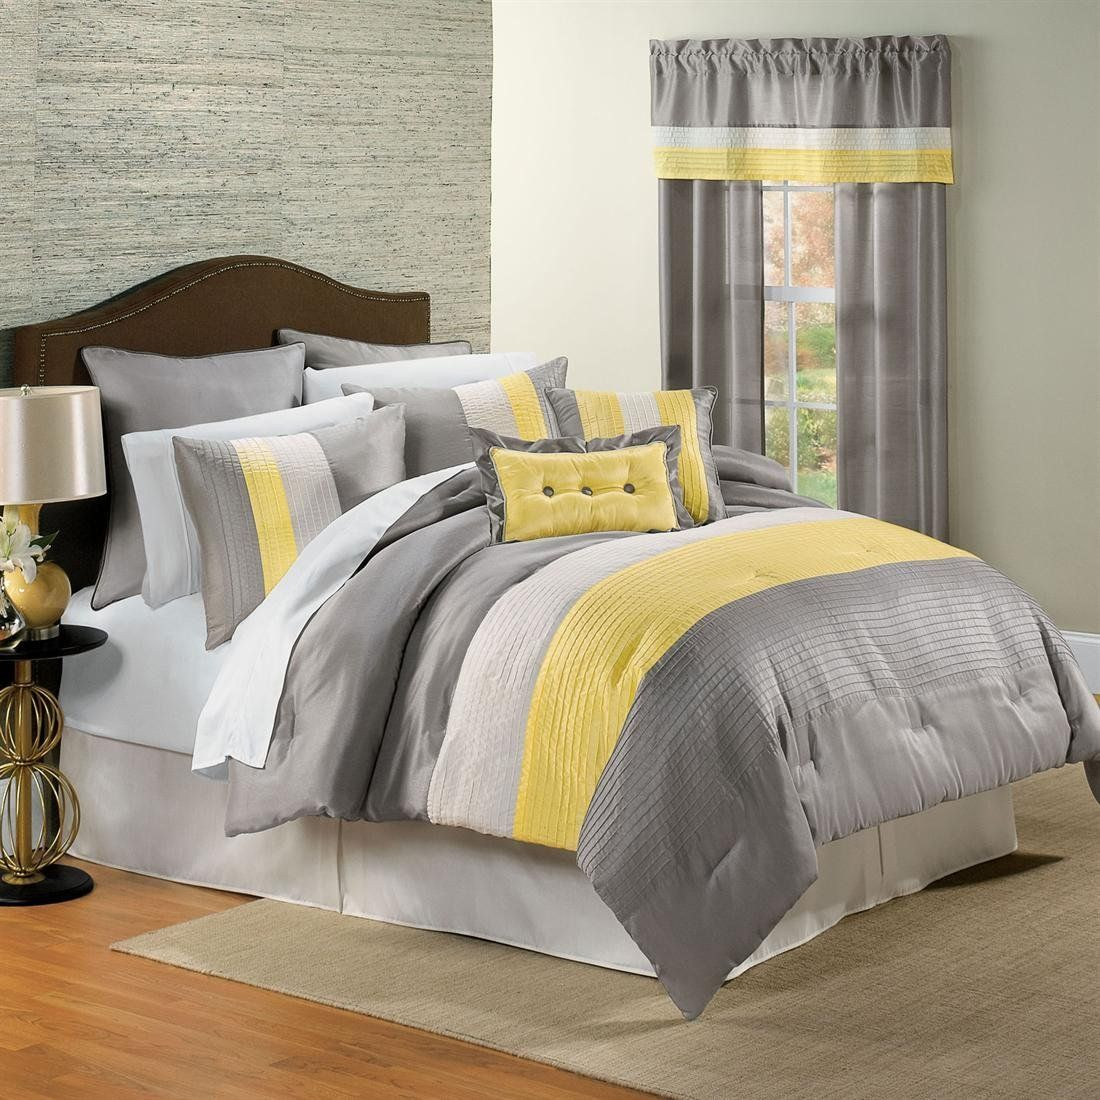 Yellow And Gray Bedroom Prepossessing Yellow And Gray Bedding That Will Make Your Bedroom Pop Design Decoration